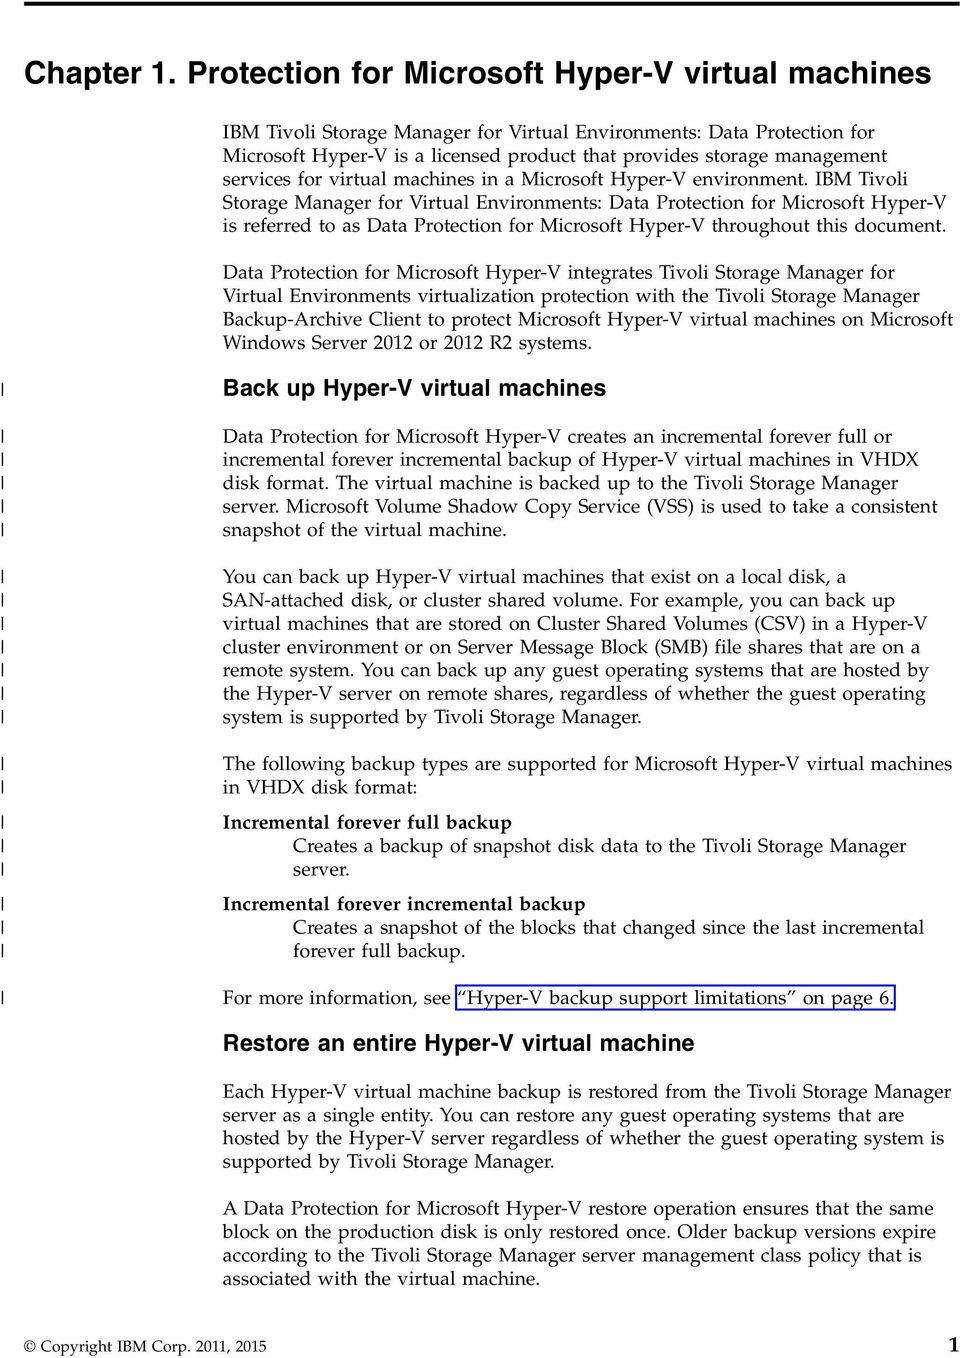 IBM Tivoli Storage Manager for Virtual Environments Version Data